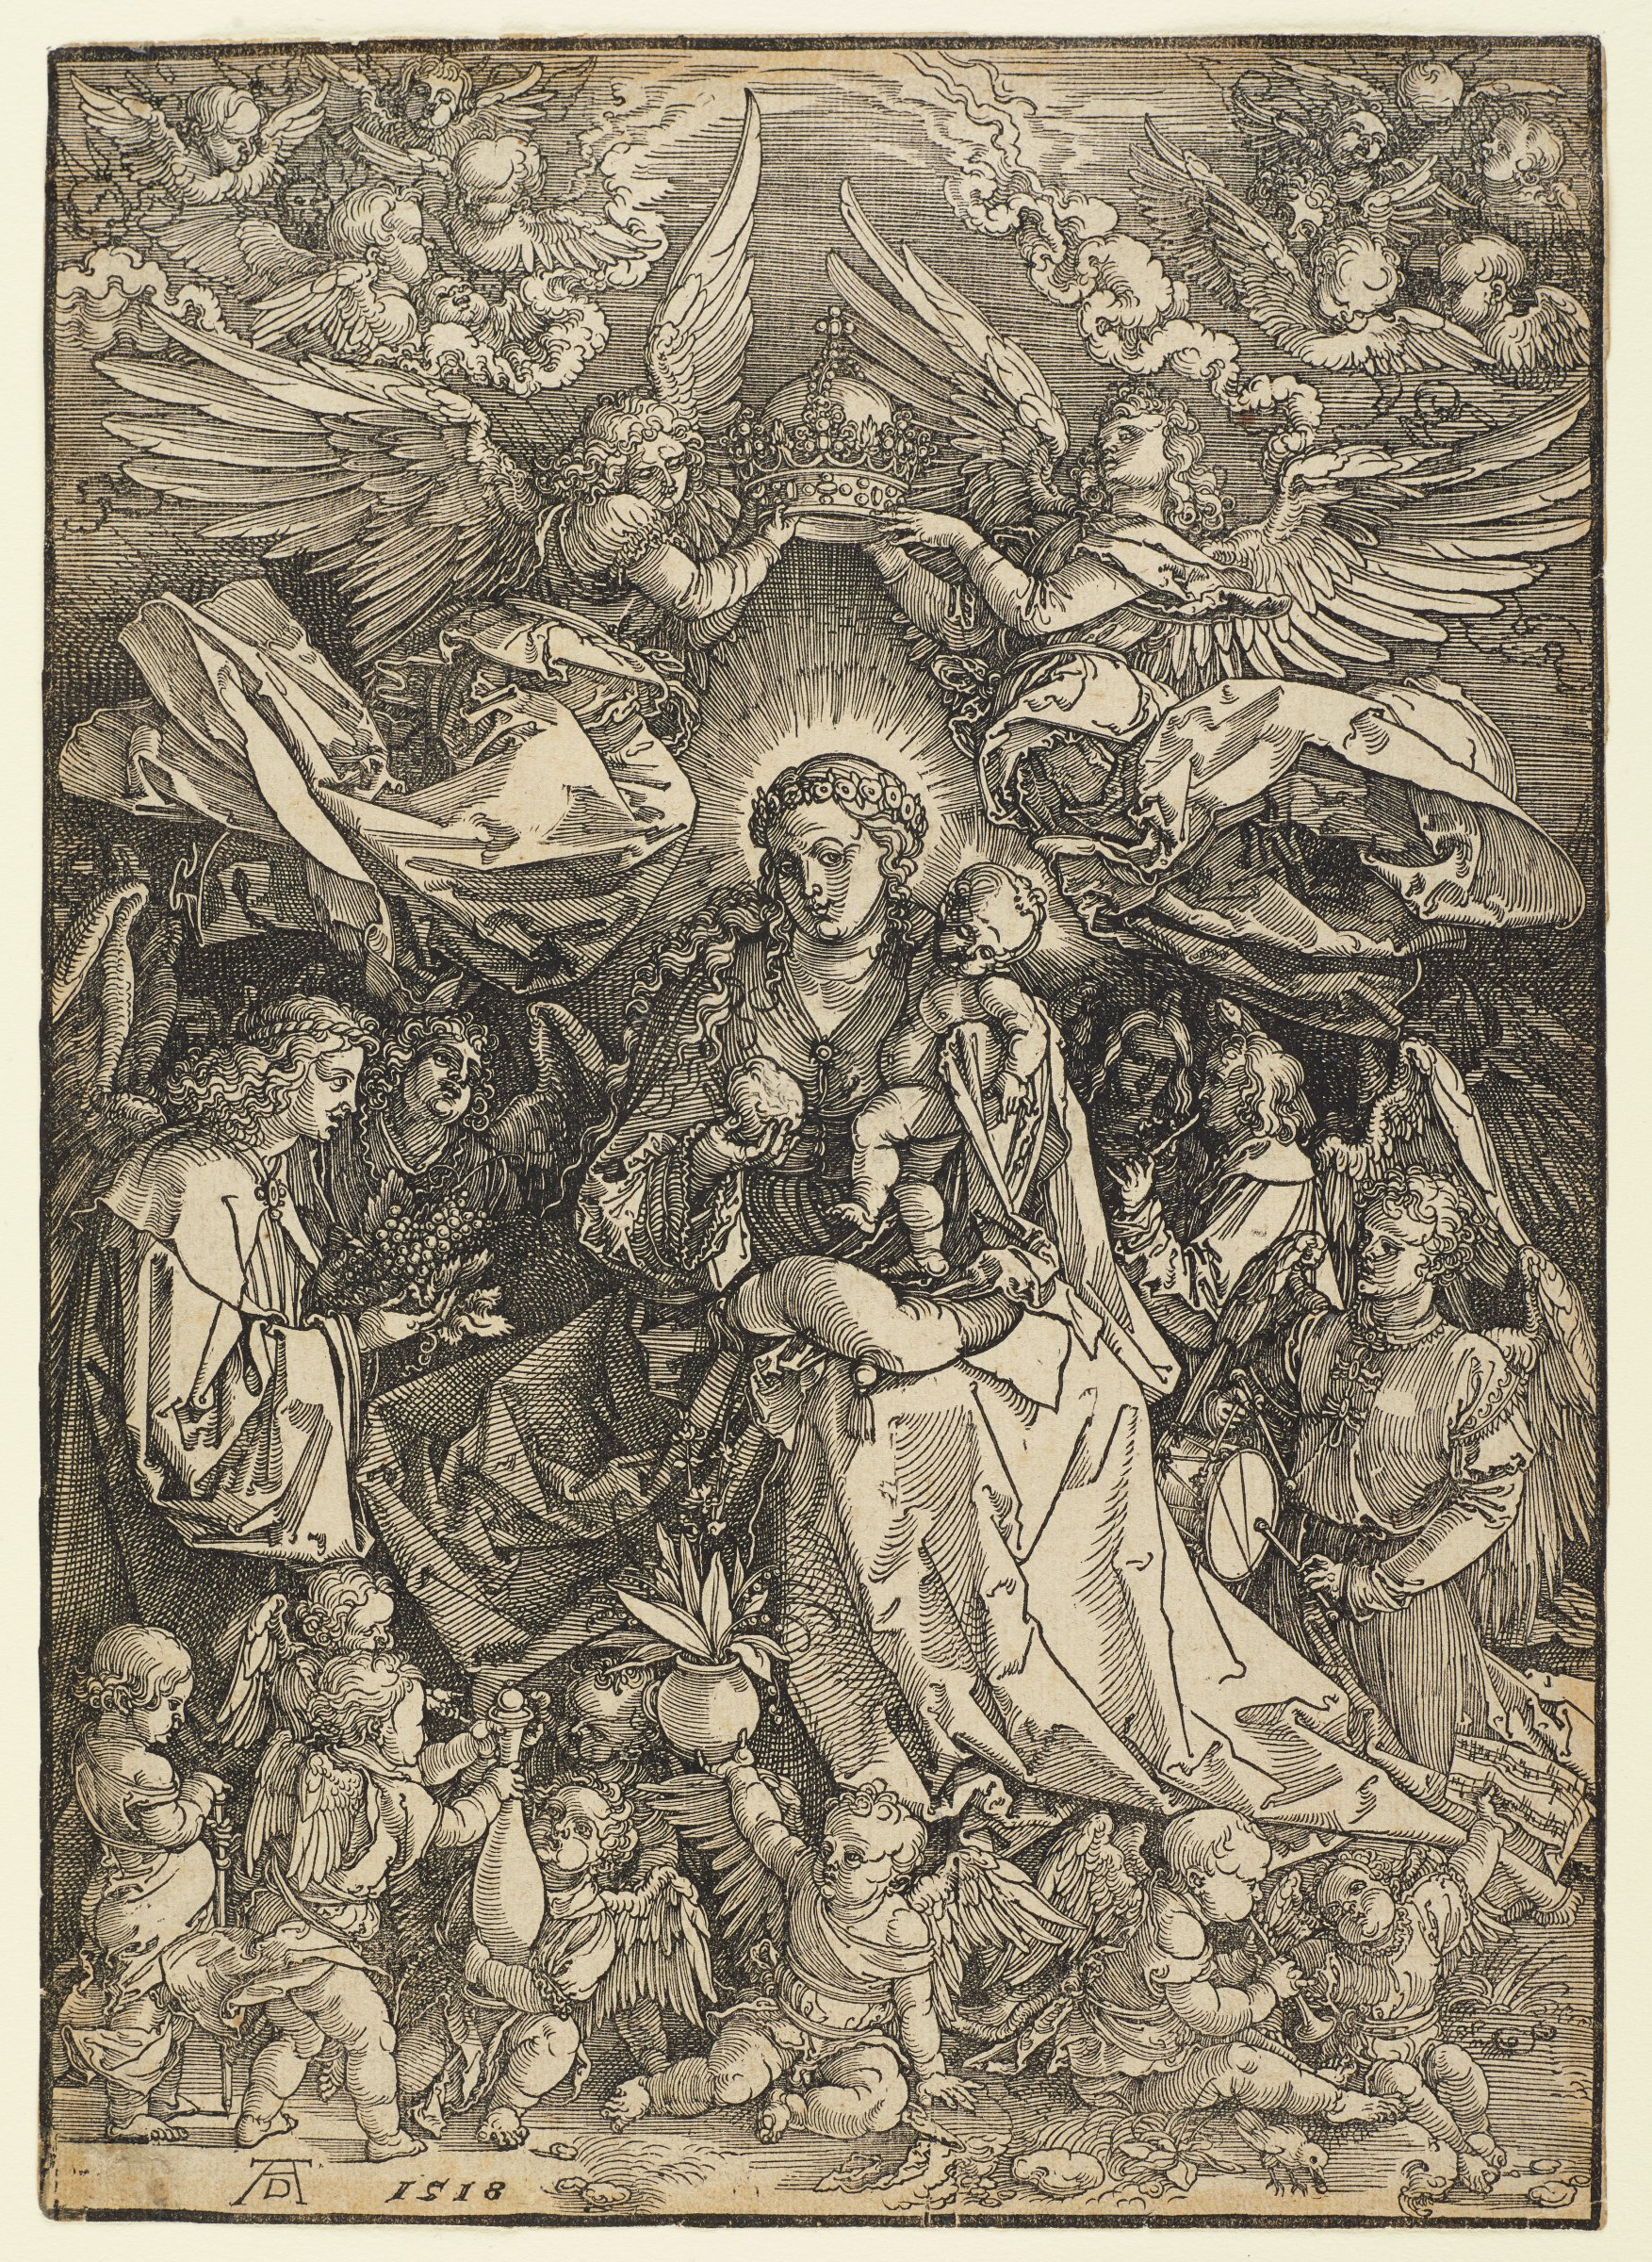 The Virgin Mary stands in the center of the composition holding baby Jesus. The two are surrounded by angels and putti. Two angels lower a crown onto Mary's head.